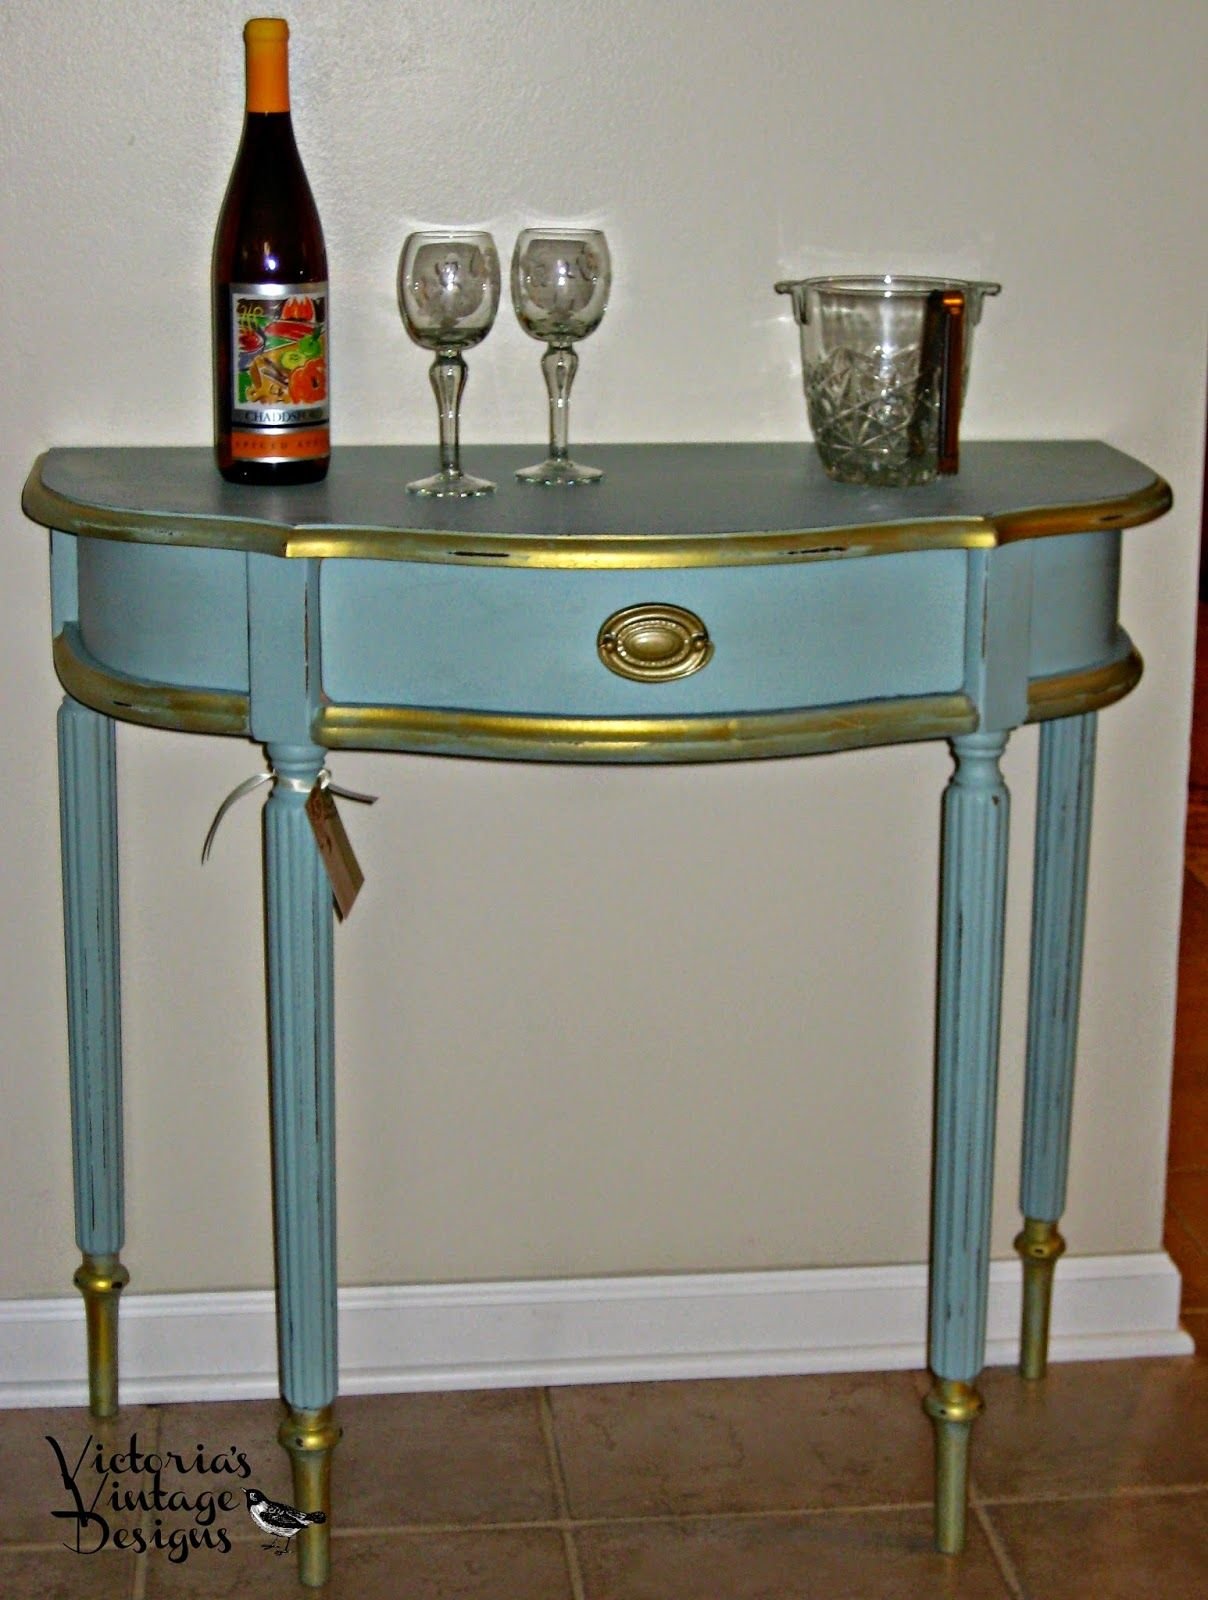 victoria vintage designs hand painted demilune accent table drawer hampton bay patio winsome instructions wood and mirrored bedside backyard ethan allen lighting black acrylic